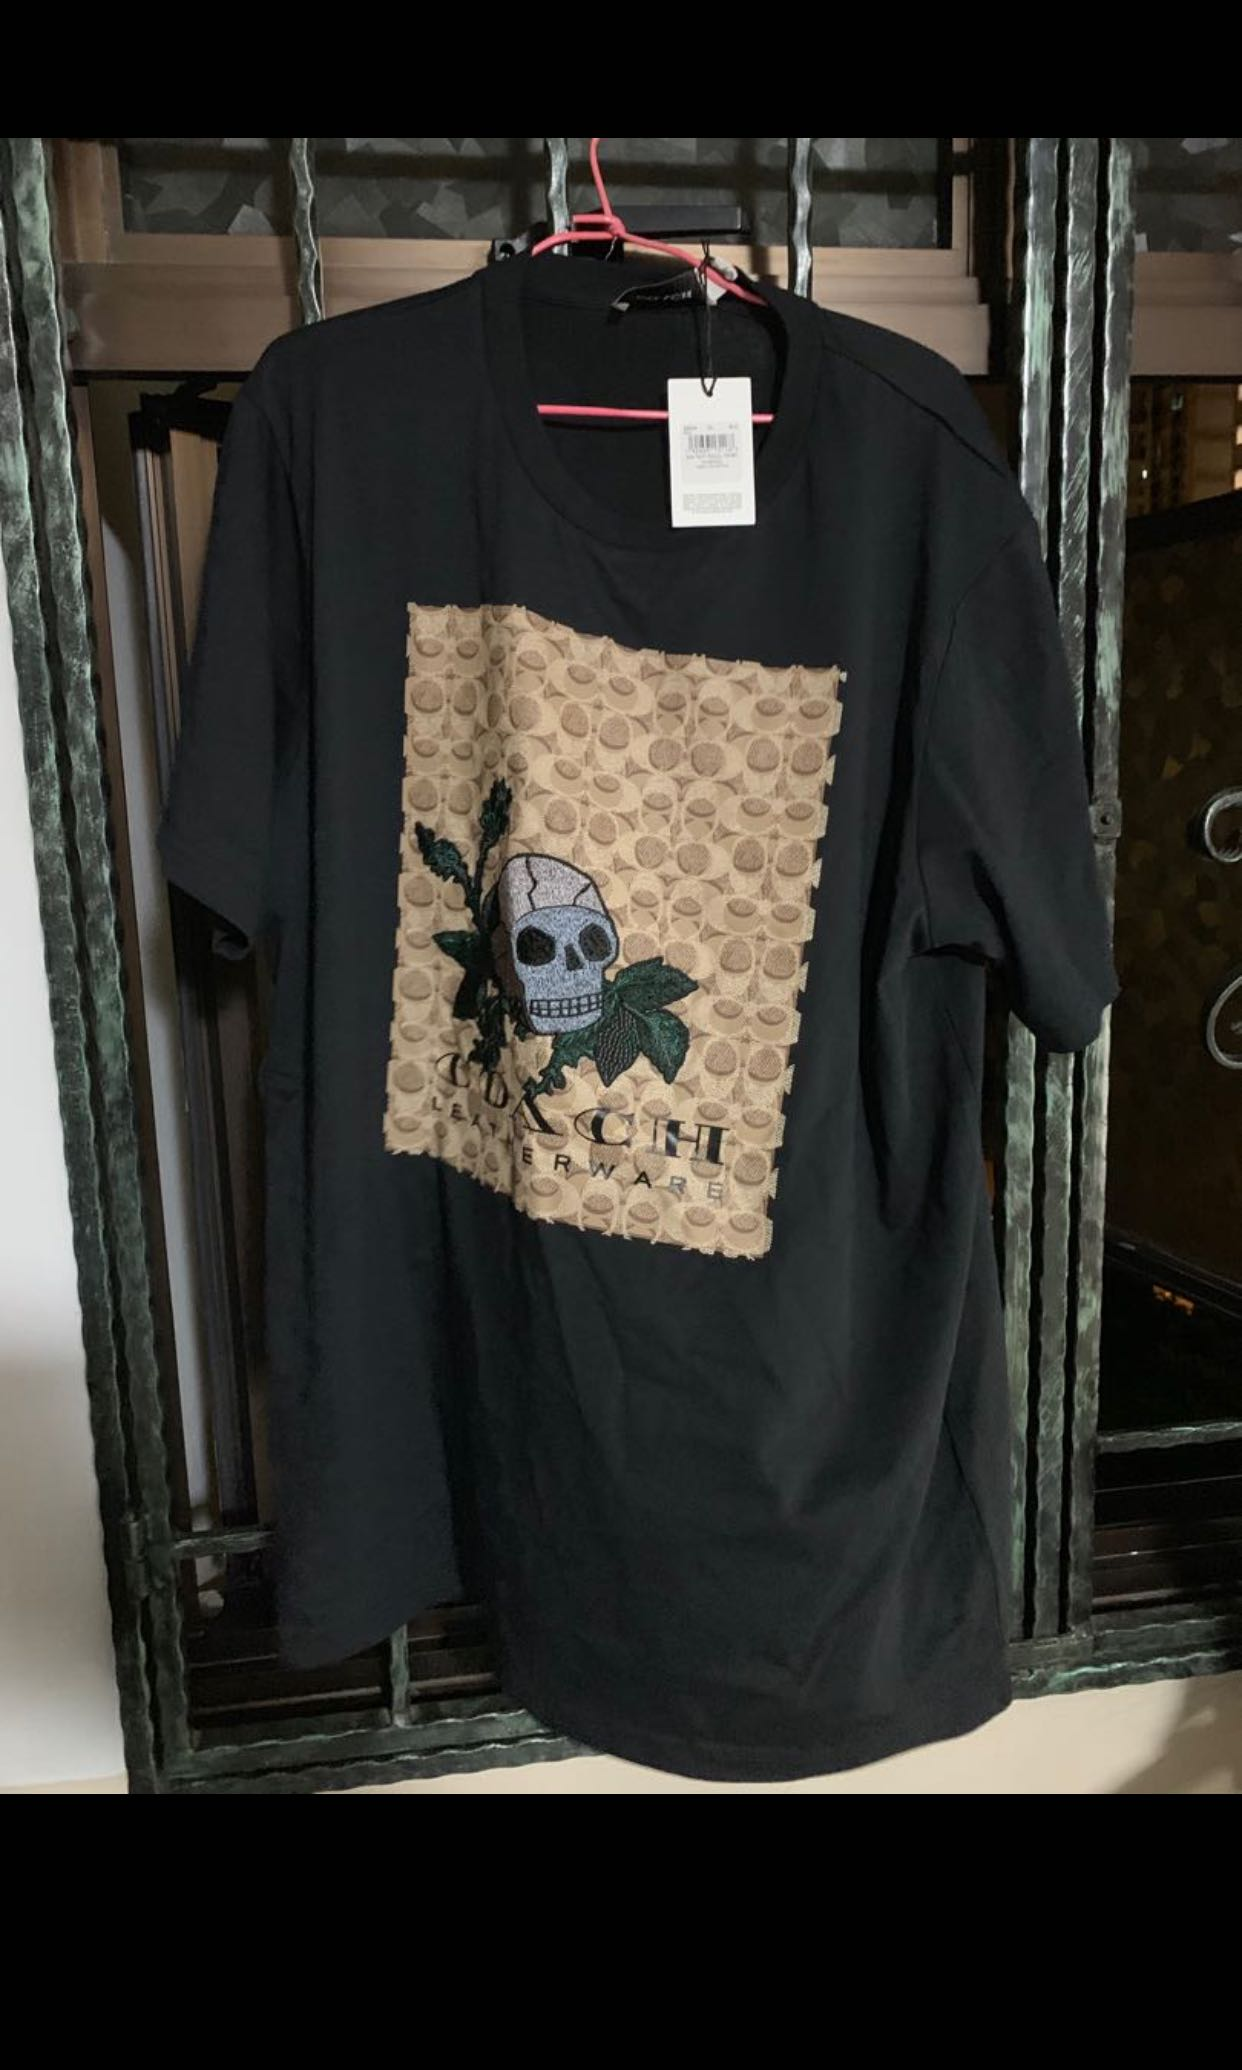 0d760744bb4870 Coach Skull T-Shirt, Men's Fashion, Clothes, Tops on Carousell